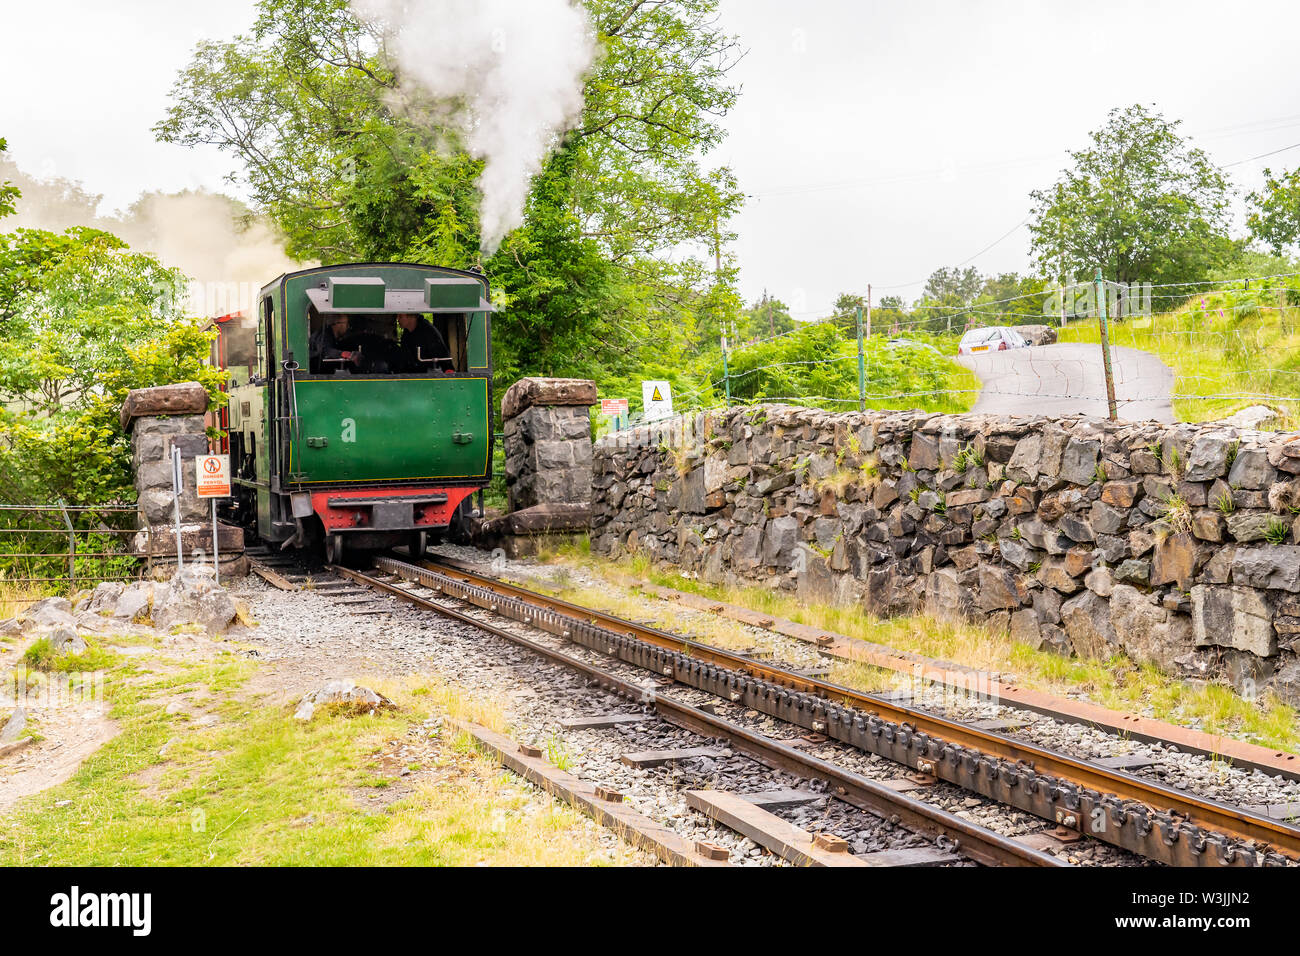 Mount Snowdon Railway, Llanberis, North Wales. One of the traditional steam engines used to push the passenger carriage to the summit of Mount Snowdon - Stock Image